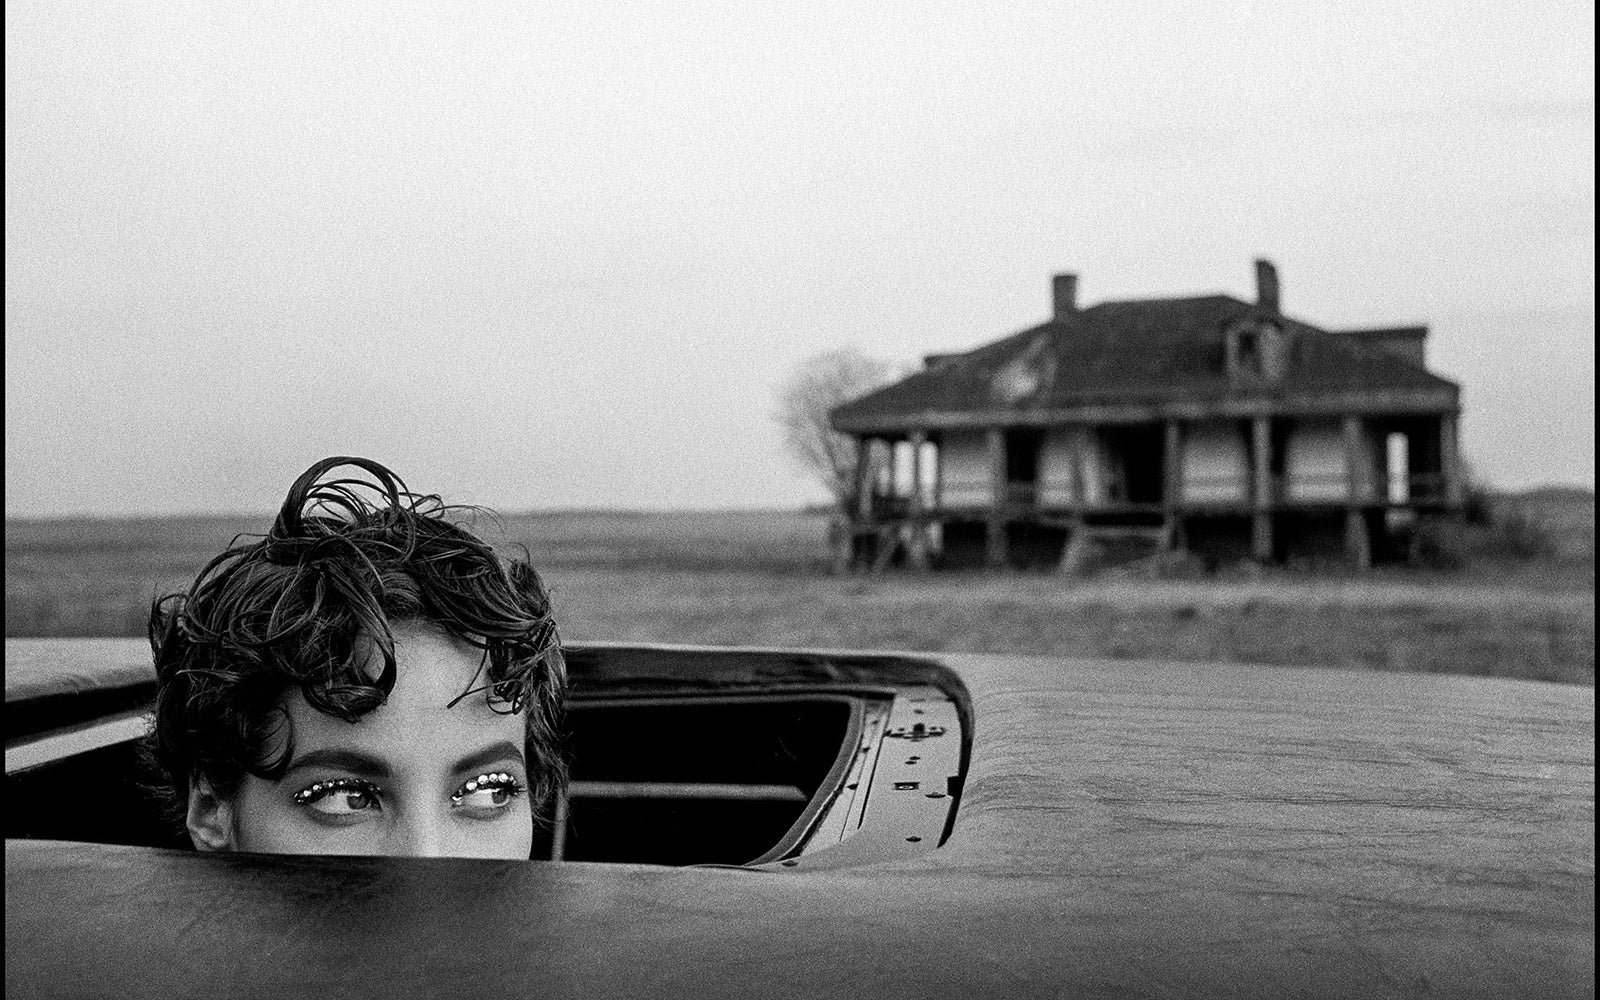 Arthur Elgort: 'Christy Turlington, New Orleans, LA, British Vogue', 1990 | Archival pigment print | Lenscloud